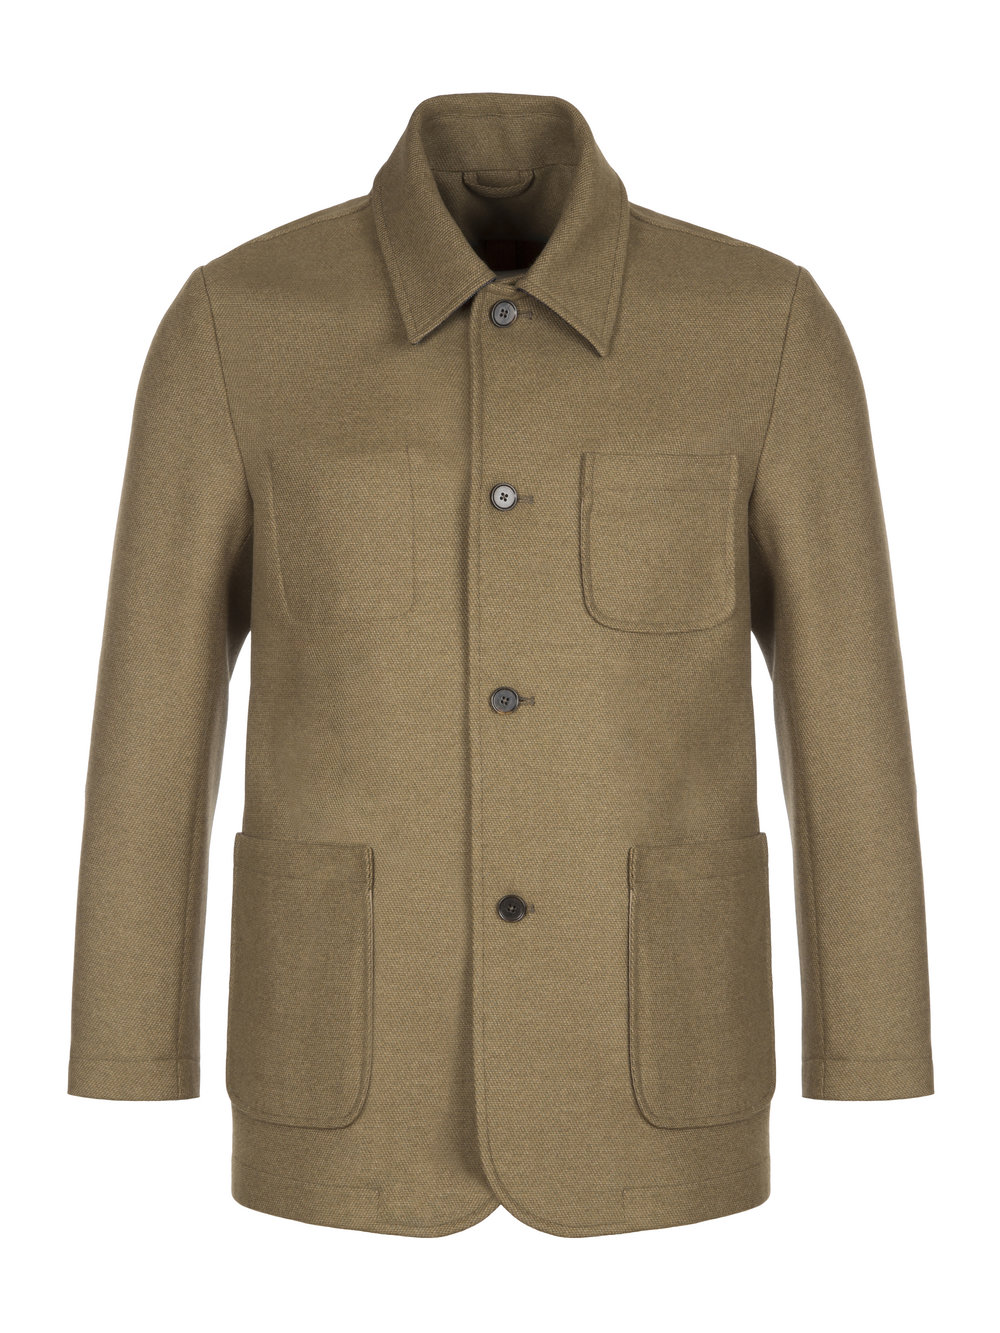 MbE Khaki Chore Deluxe - The MbE Chore Deluxe – A versatile jacket that takes the artisan work jacket as its inspiration, that you can